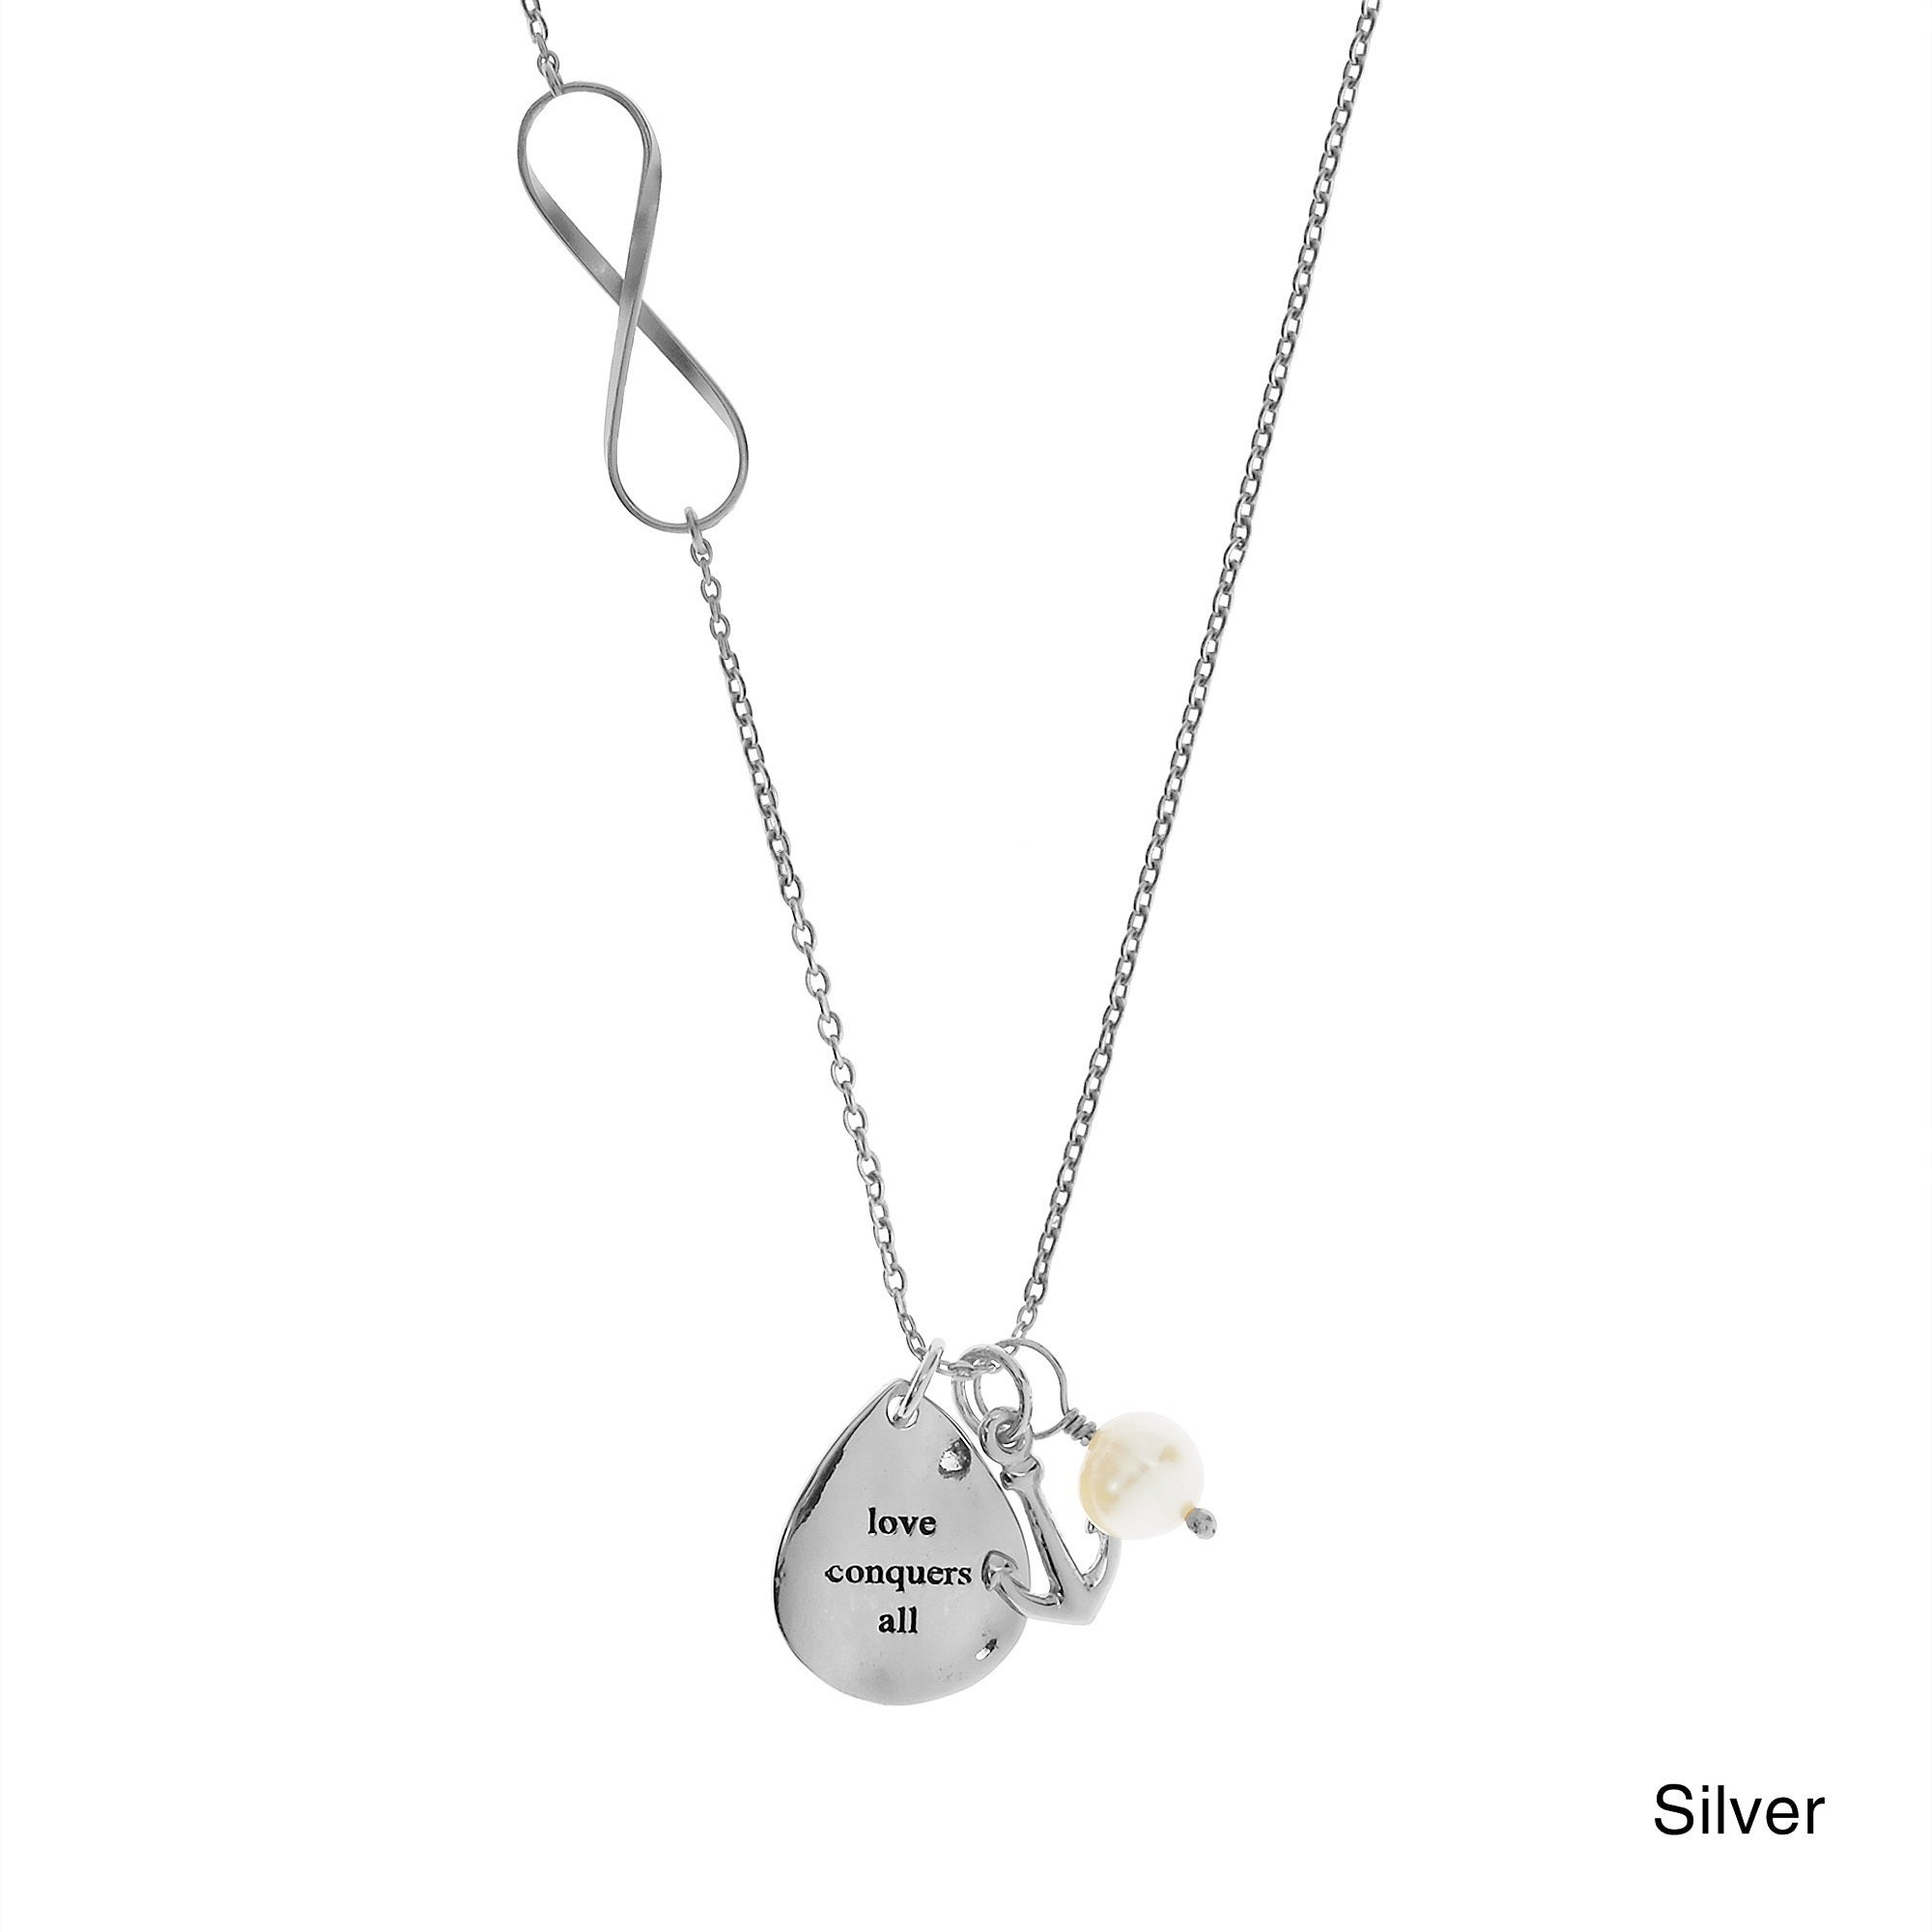 Choose Your Color Pori Jewelers 925 Sterling Silver Dog Paw Oval Locket Necklace in Diamond Cut 18 Chain